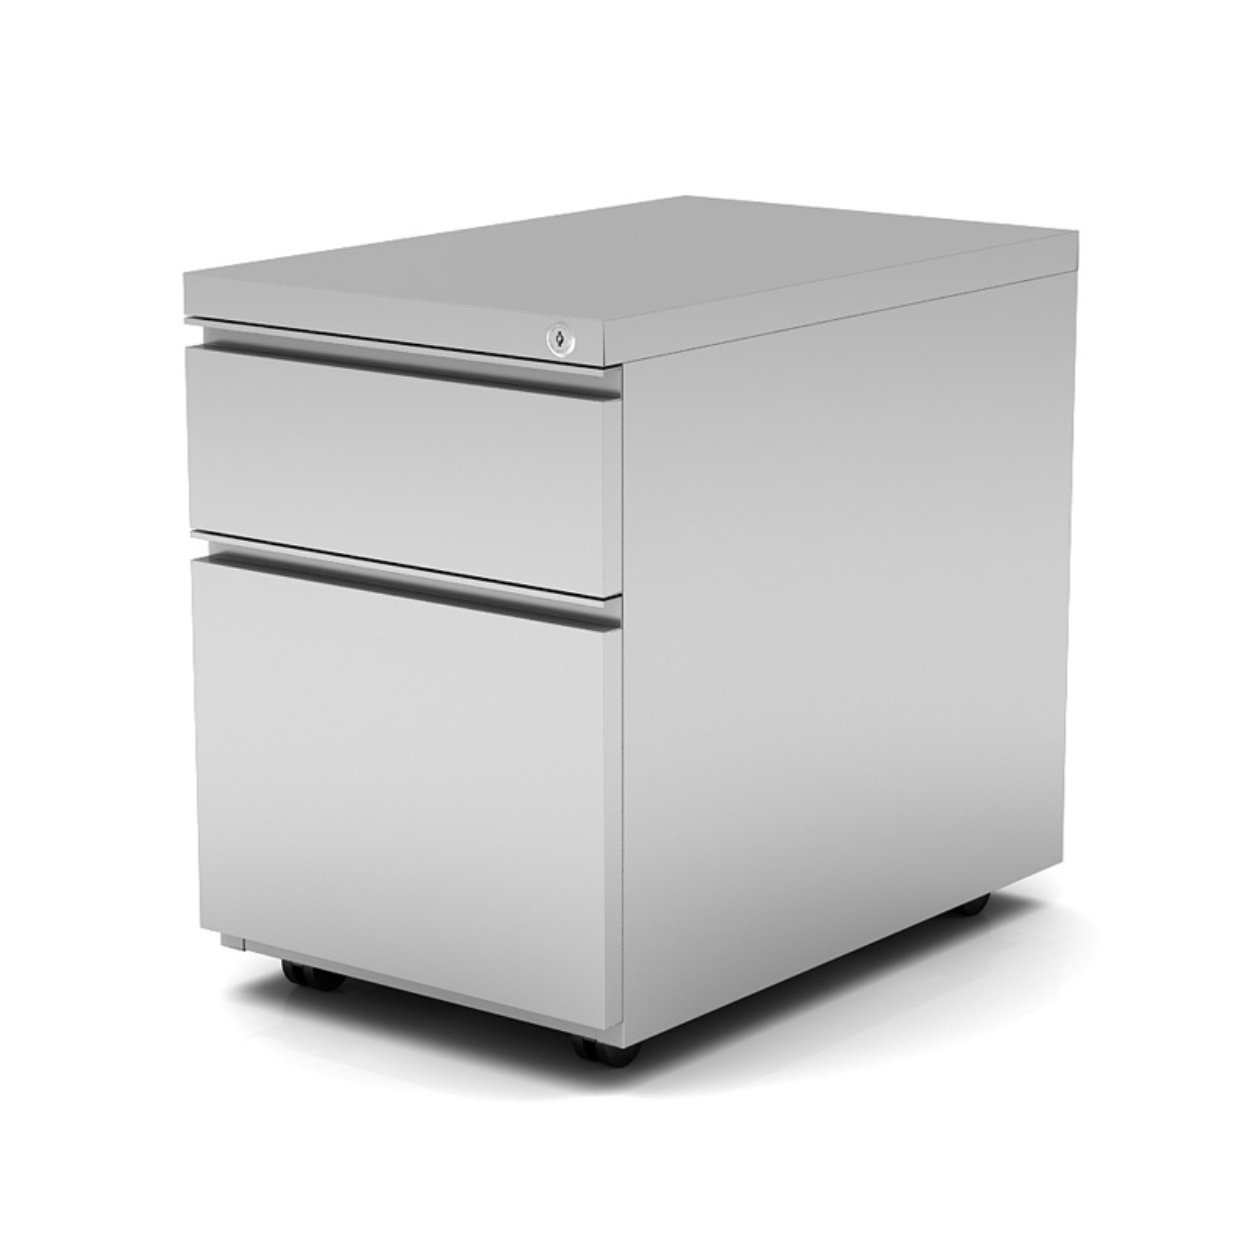 Performance - Mobile Low Drawer Pedestal File - Duckys Office Furniture